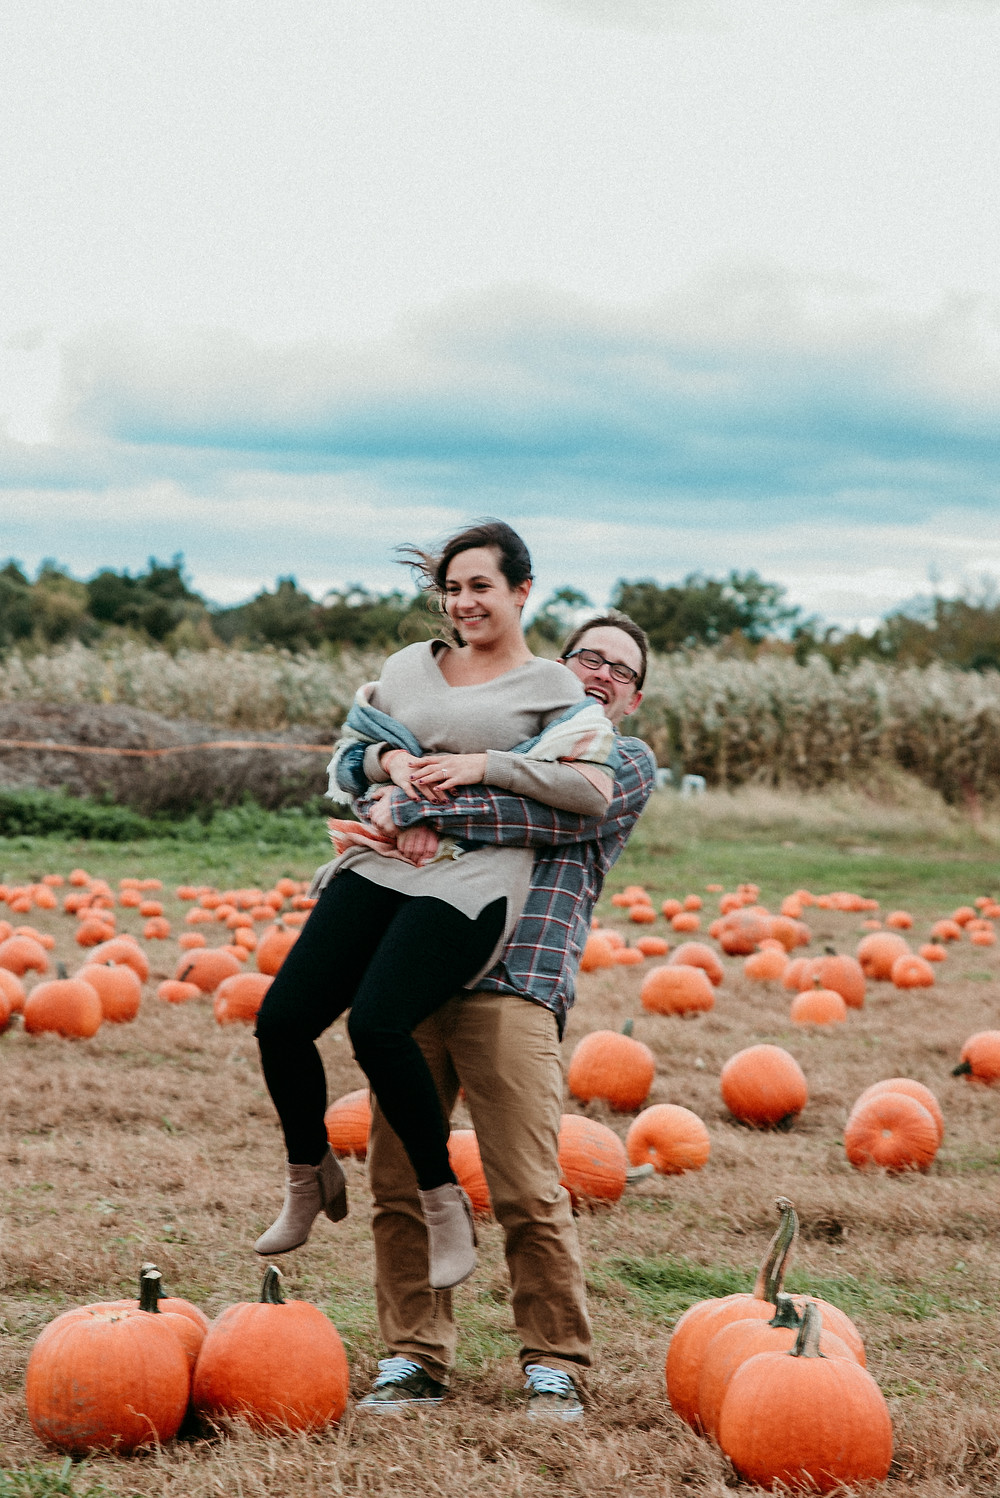 Autumn Engagement Session at Terhune Orchards